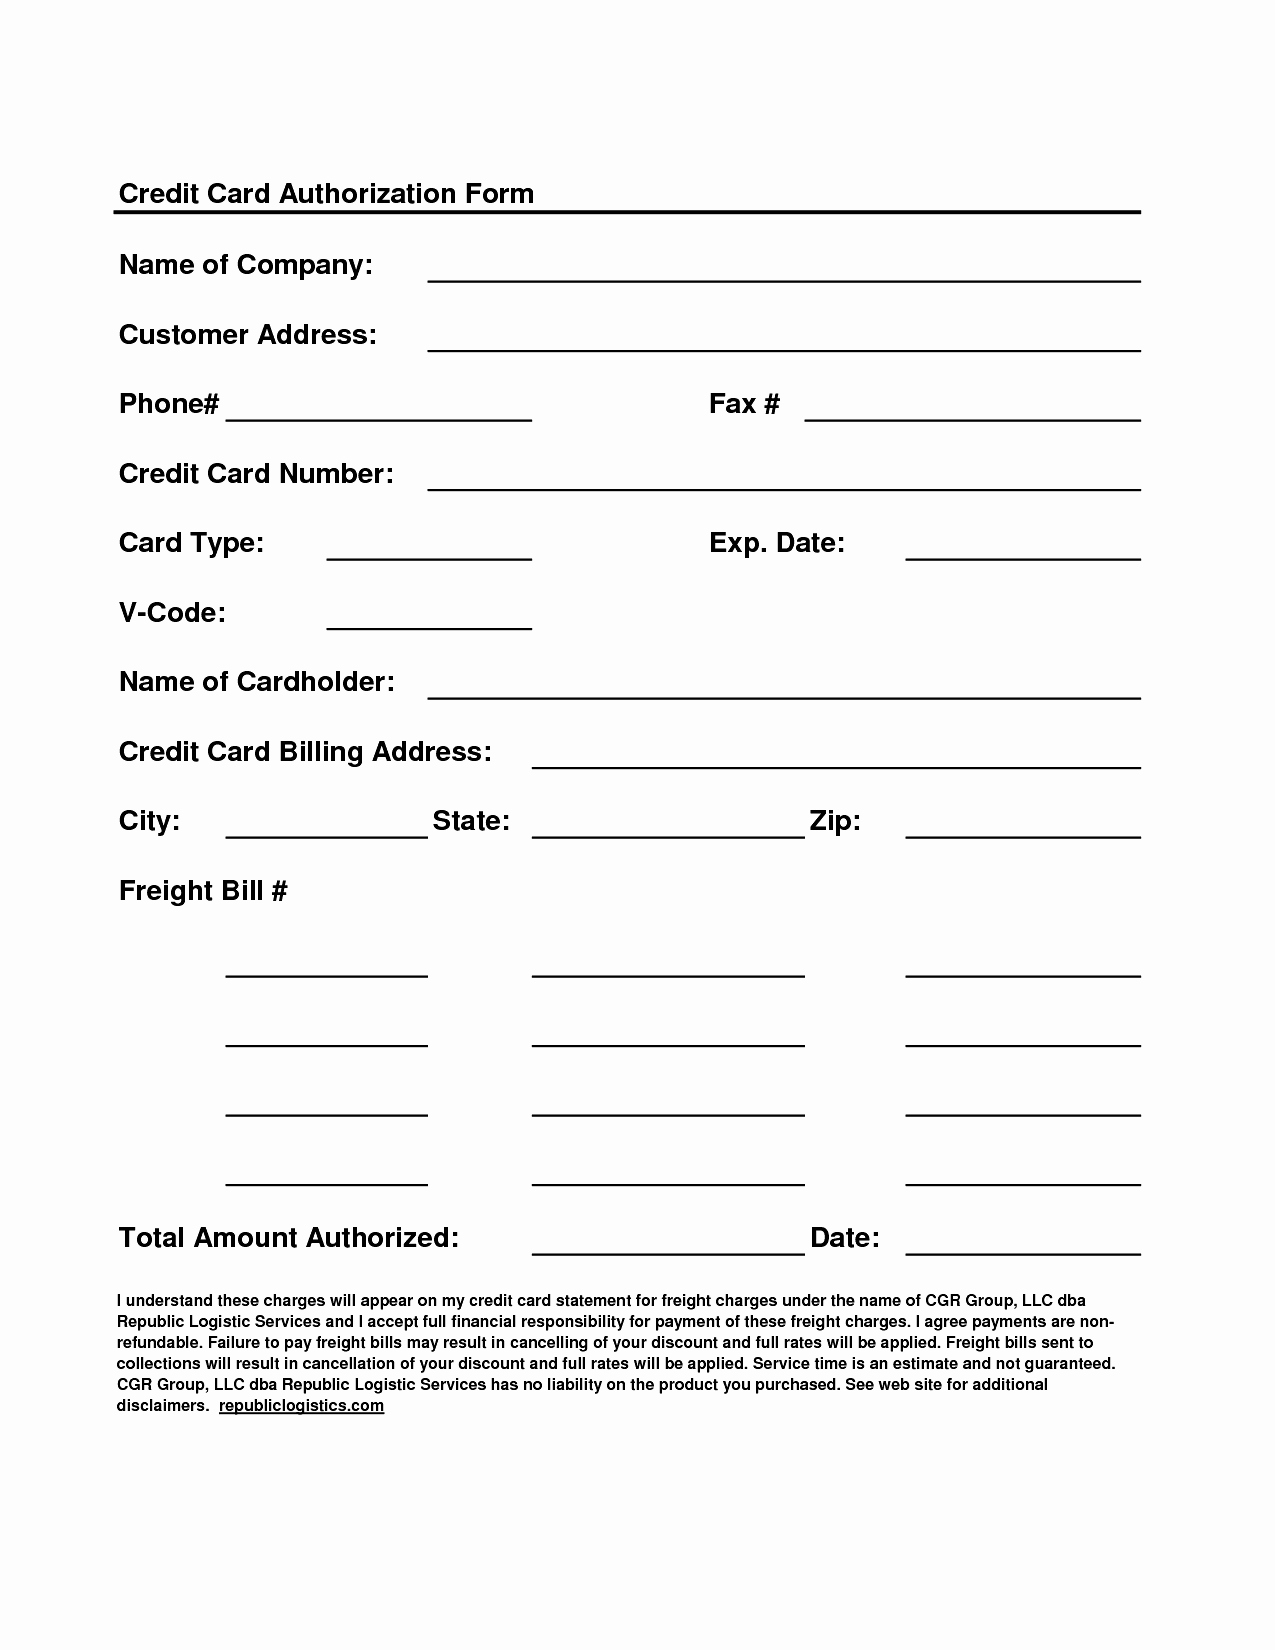 Credit Report Authorization form Template Elegant Authorization form Template Example Mughals